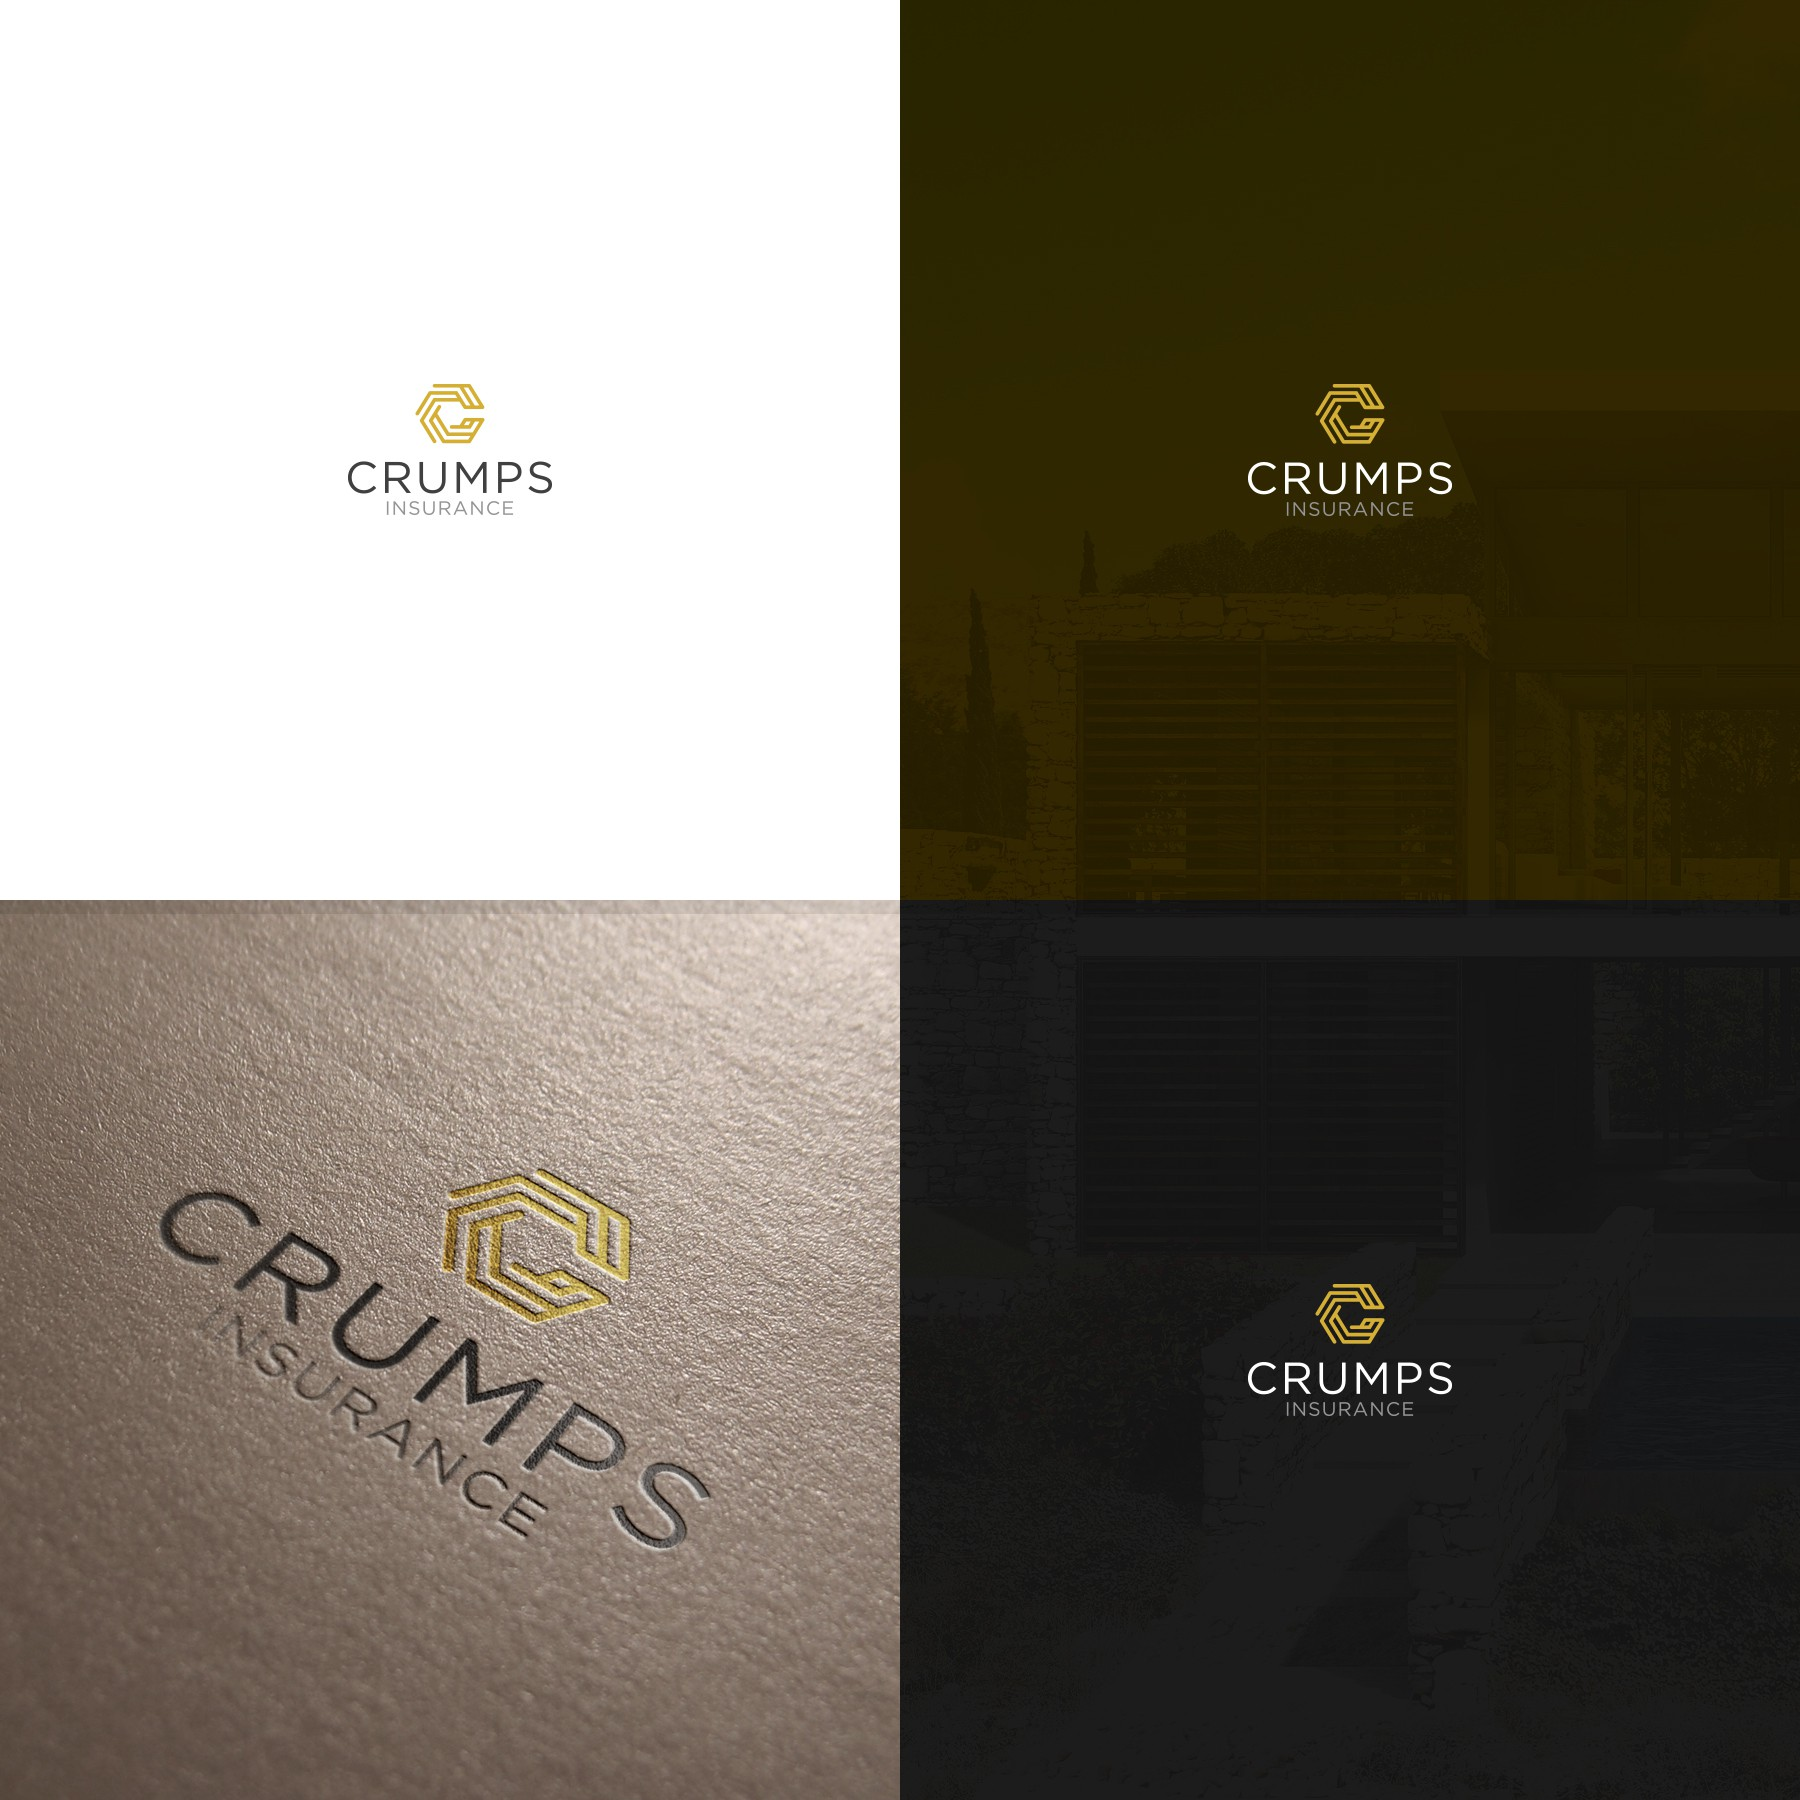 Guaranteed winner to create a logo with creative icon for an insurance agency.